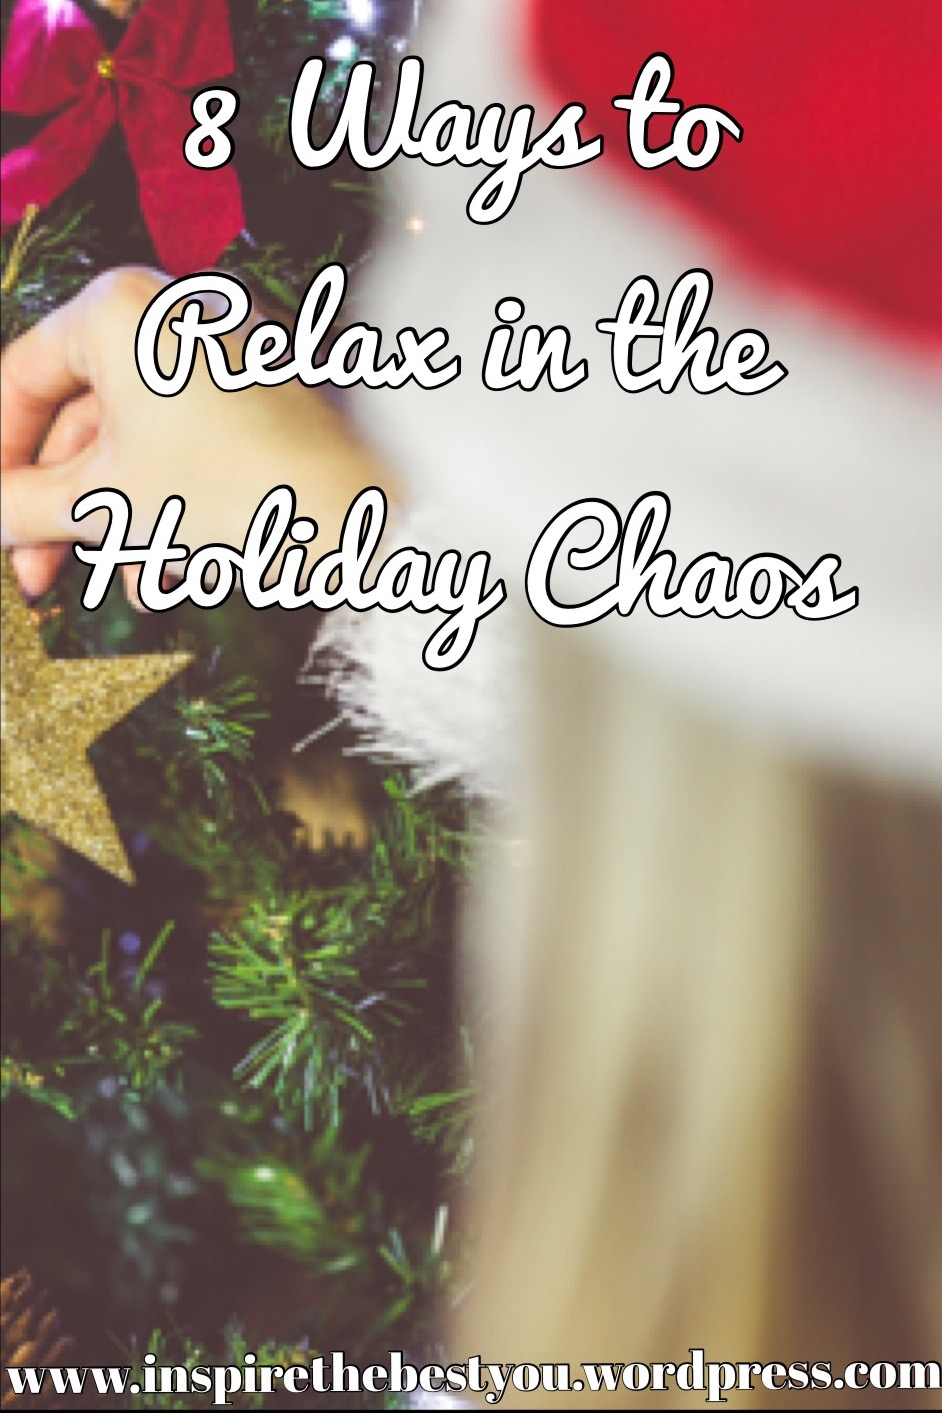 8 Ways to Relax in the Holiday Chaos